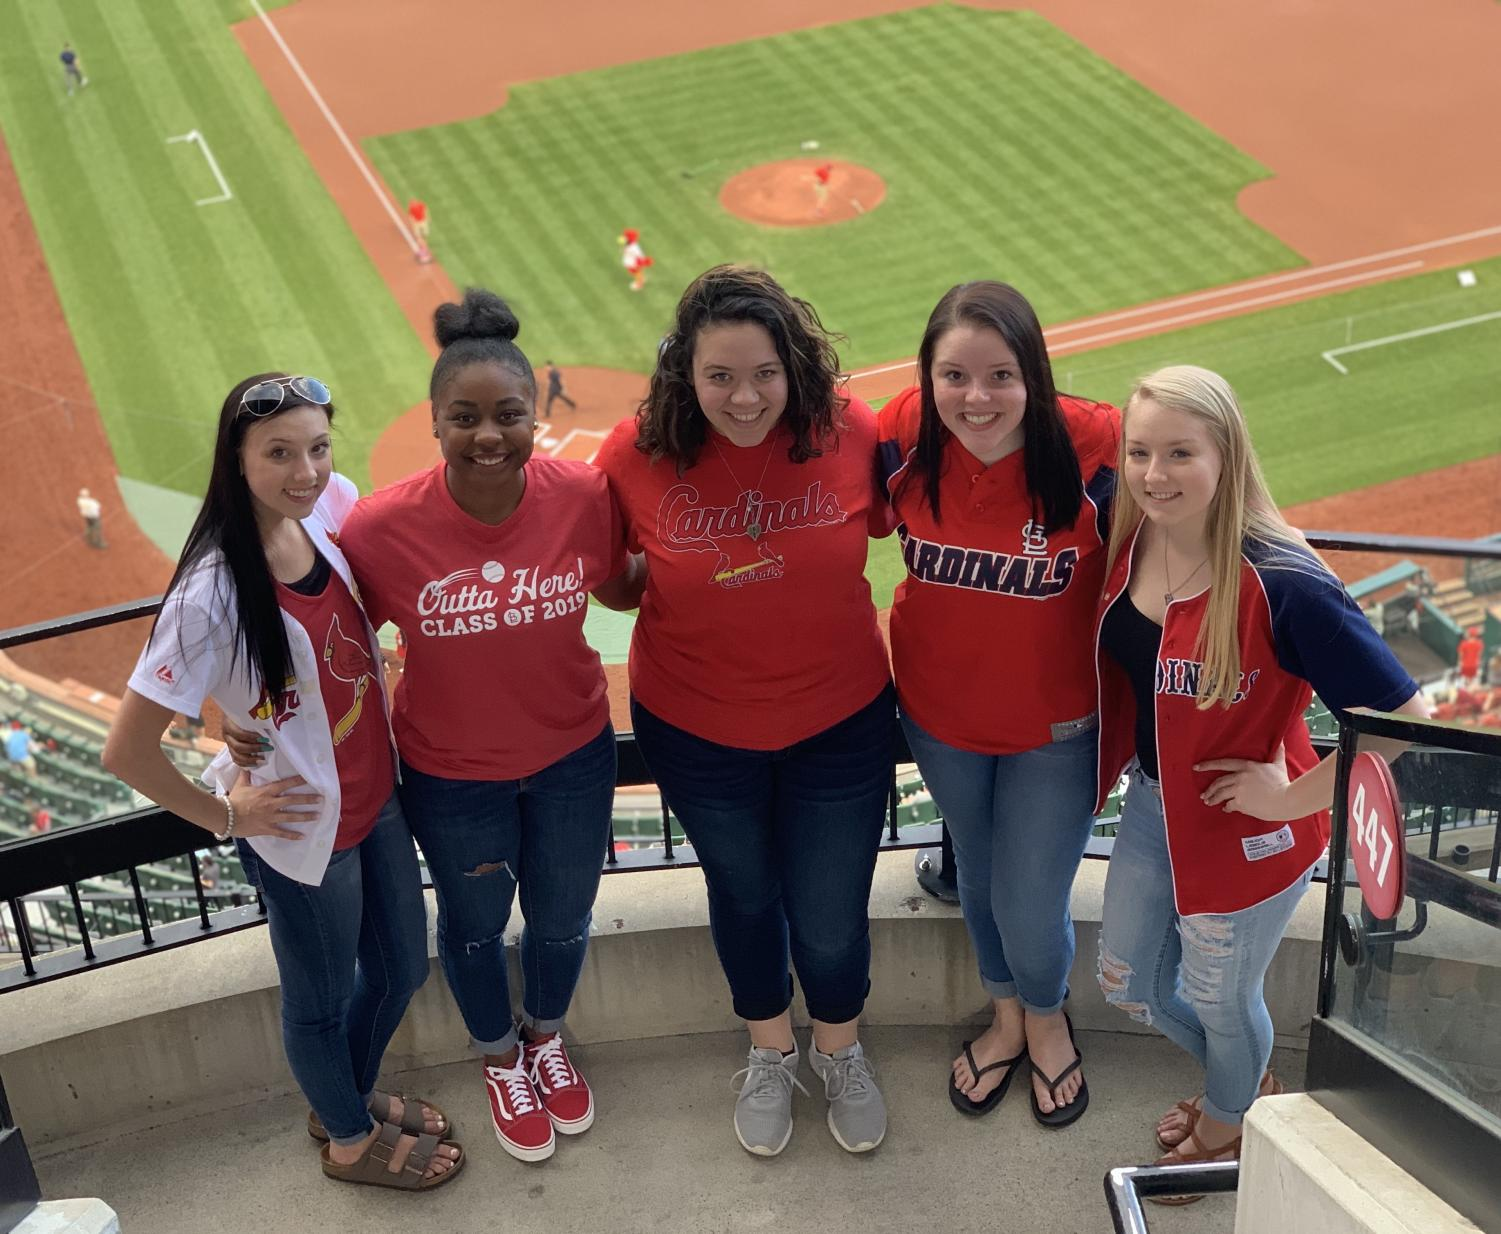 Several Chester High School seniors attended Class of 2019 Night At Busch Stadium on April 22. Enjoying a Cardinals win over the Brewers were (left to right) Kamryn Wingerter, Sylena Martin, Lexie Price, Caitlin Elsea and Cara Childs.